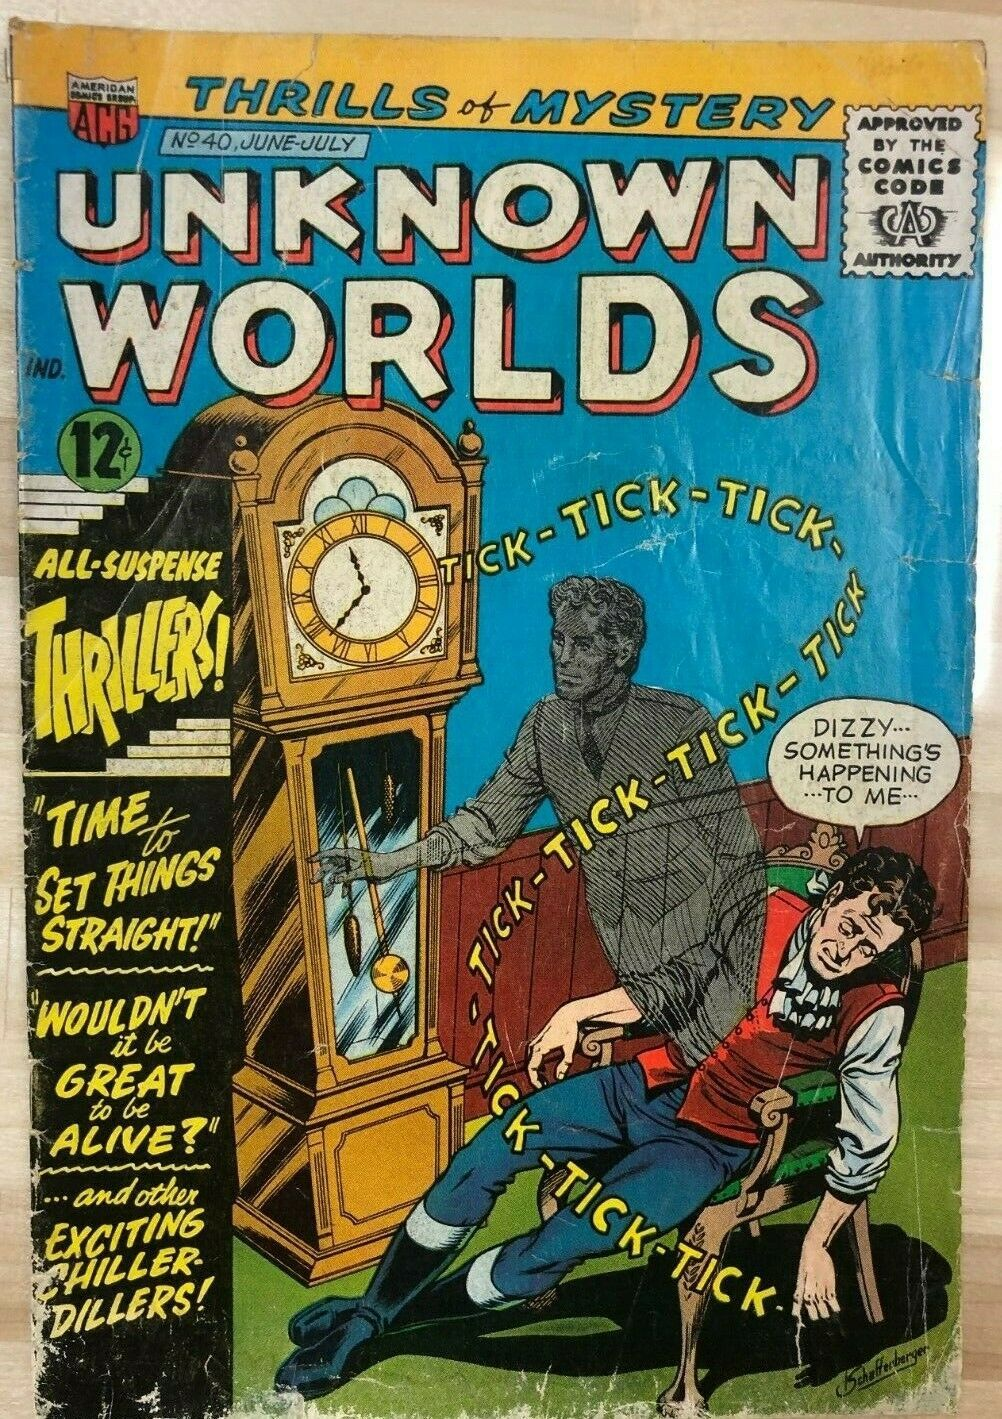 Primary image for UNKNOWN WORLDS #40 (1965) ACG Comics G/VG